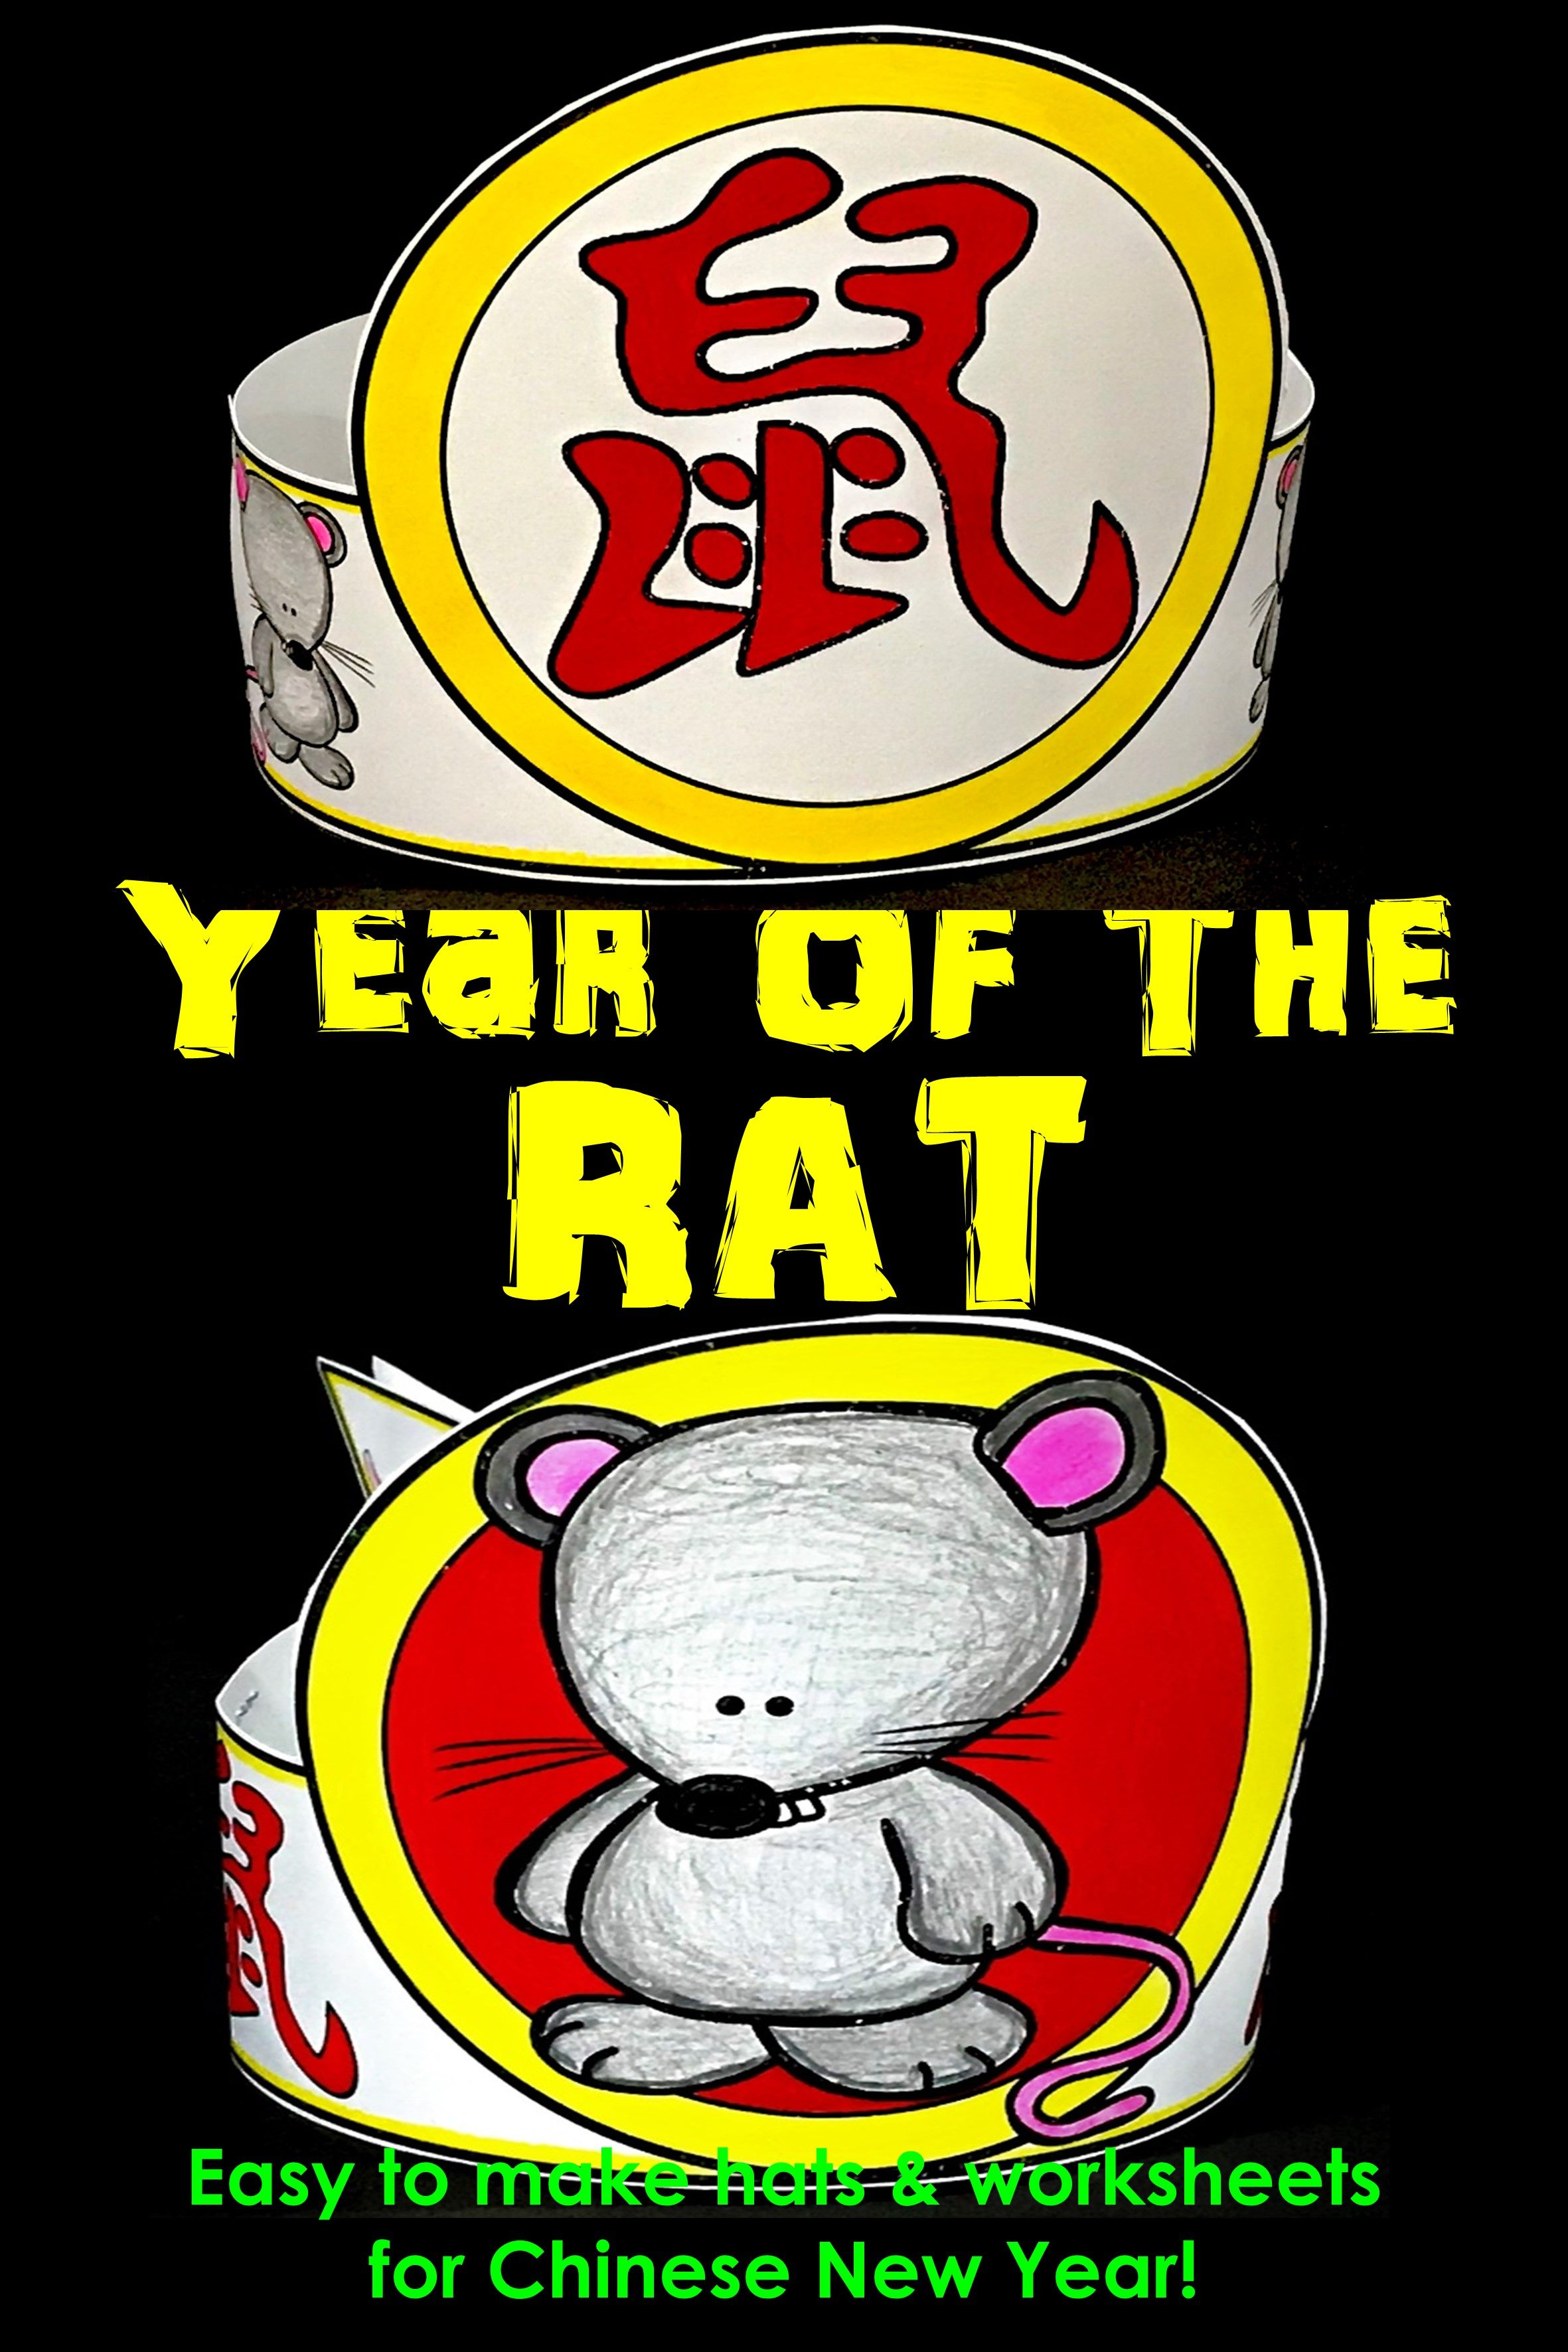 Chinese New Year Rat Hat Year Of The Rat Chinese New